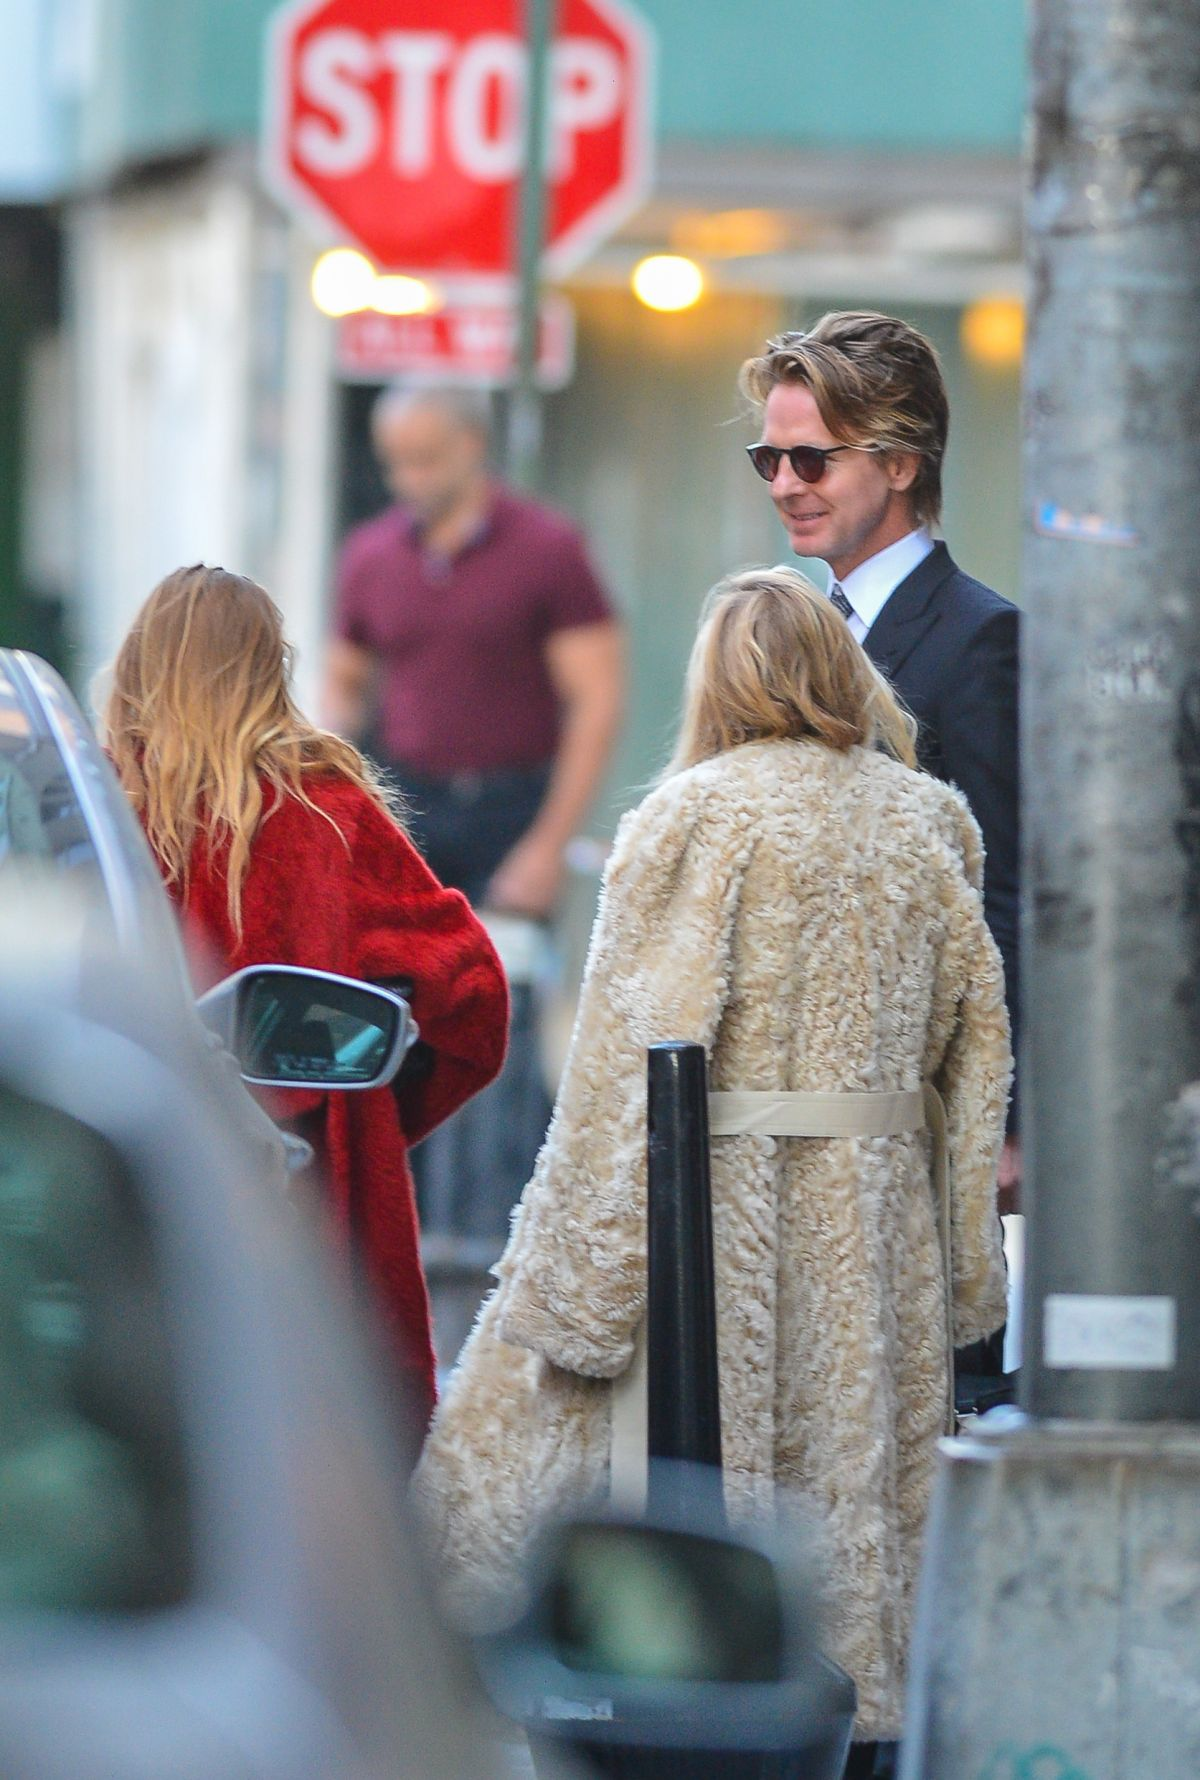 Ashley and Mary-Kate Olsen are spotted chatting with a mystery man in New York City